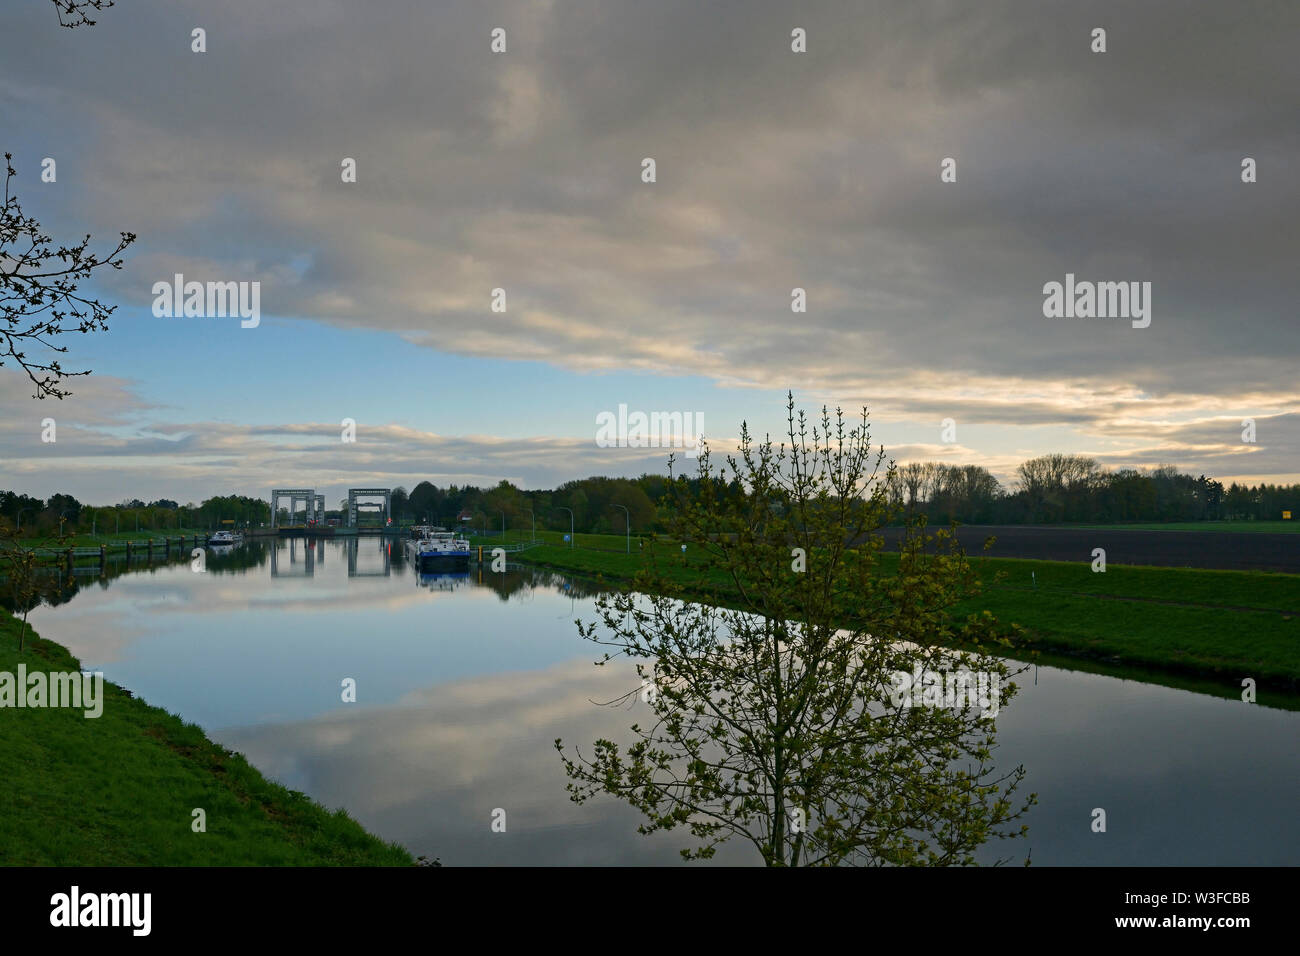 papenburg, niedersachsen/germany - may 01, 2015: river ems and dortmund ems canal respectively with herbrum locks in the background - Stock Image